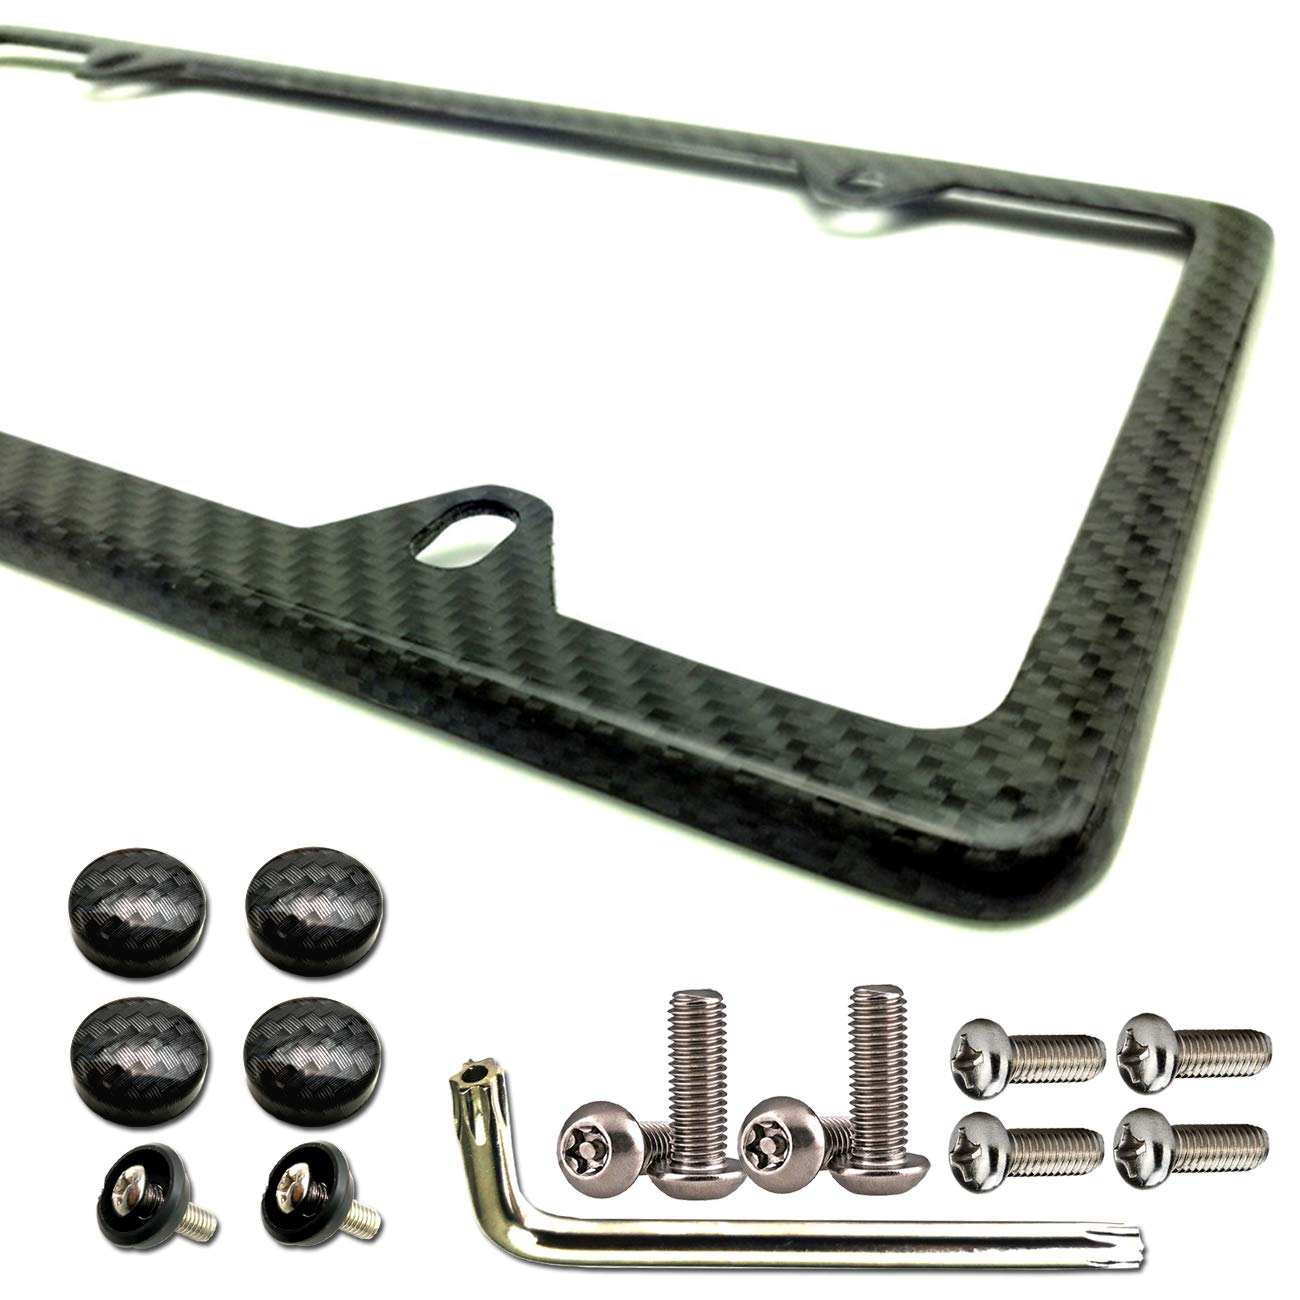 1PCS 100/% Real Carbon Fiber License Plate Frame 2 Holes Black Licenses Plates Frames,Car Licence Plate Covers Holders Slim Design with Chrome Screw Caps Tool Kit for US Canda and Mexico Vehicles